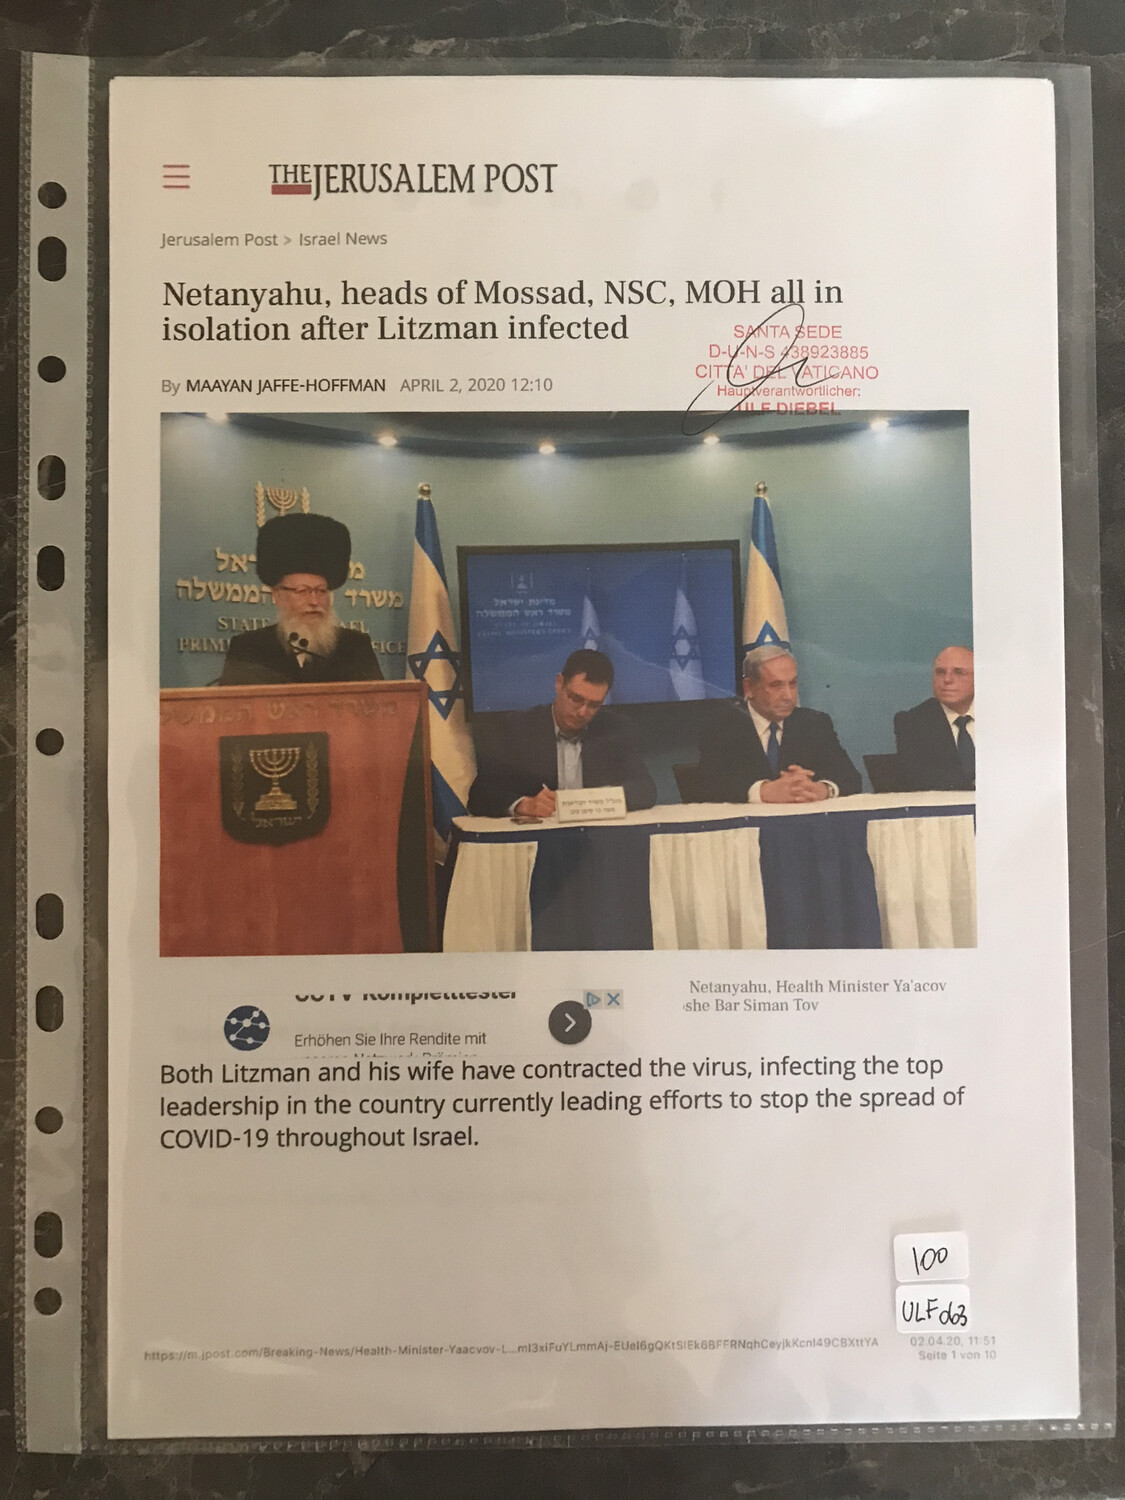 #U063 l The Jerusalem Post - Netanyahu, heads of Mossad, NSC, MOH all in isolation after Litzman infected